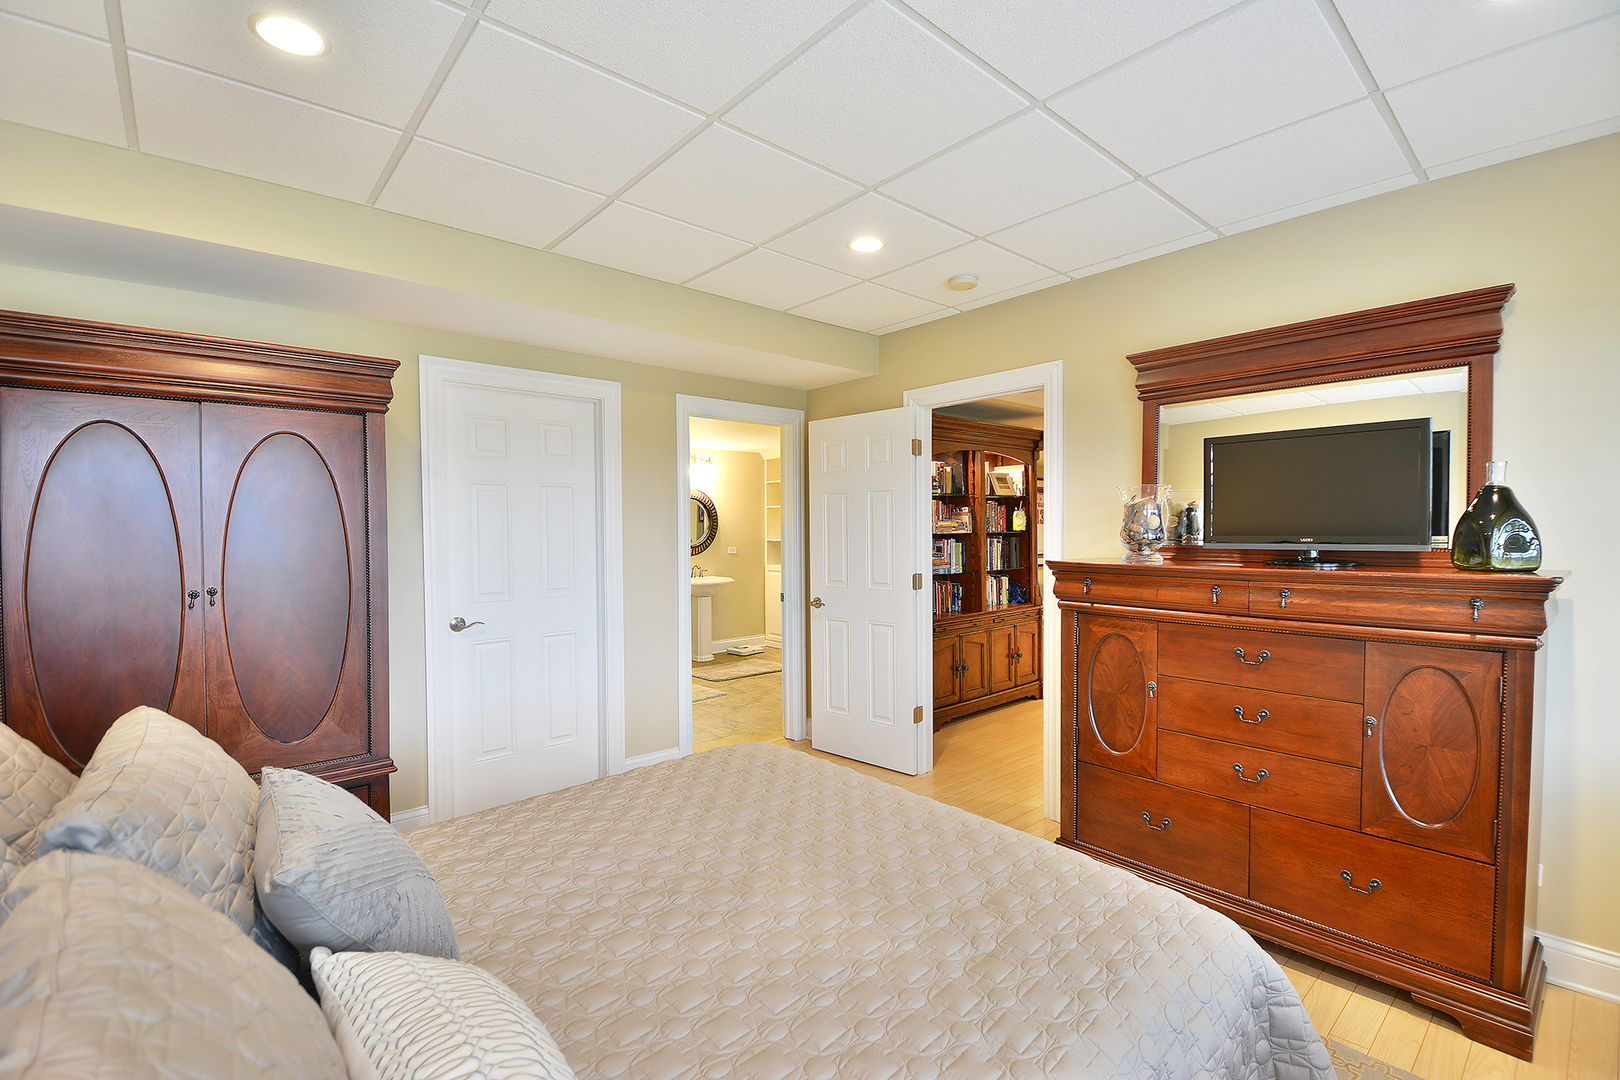 83 Tournament Drive North, Hawthorn Woods, IL, 60047 | Prime Real ...